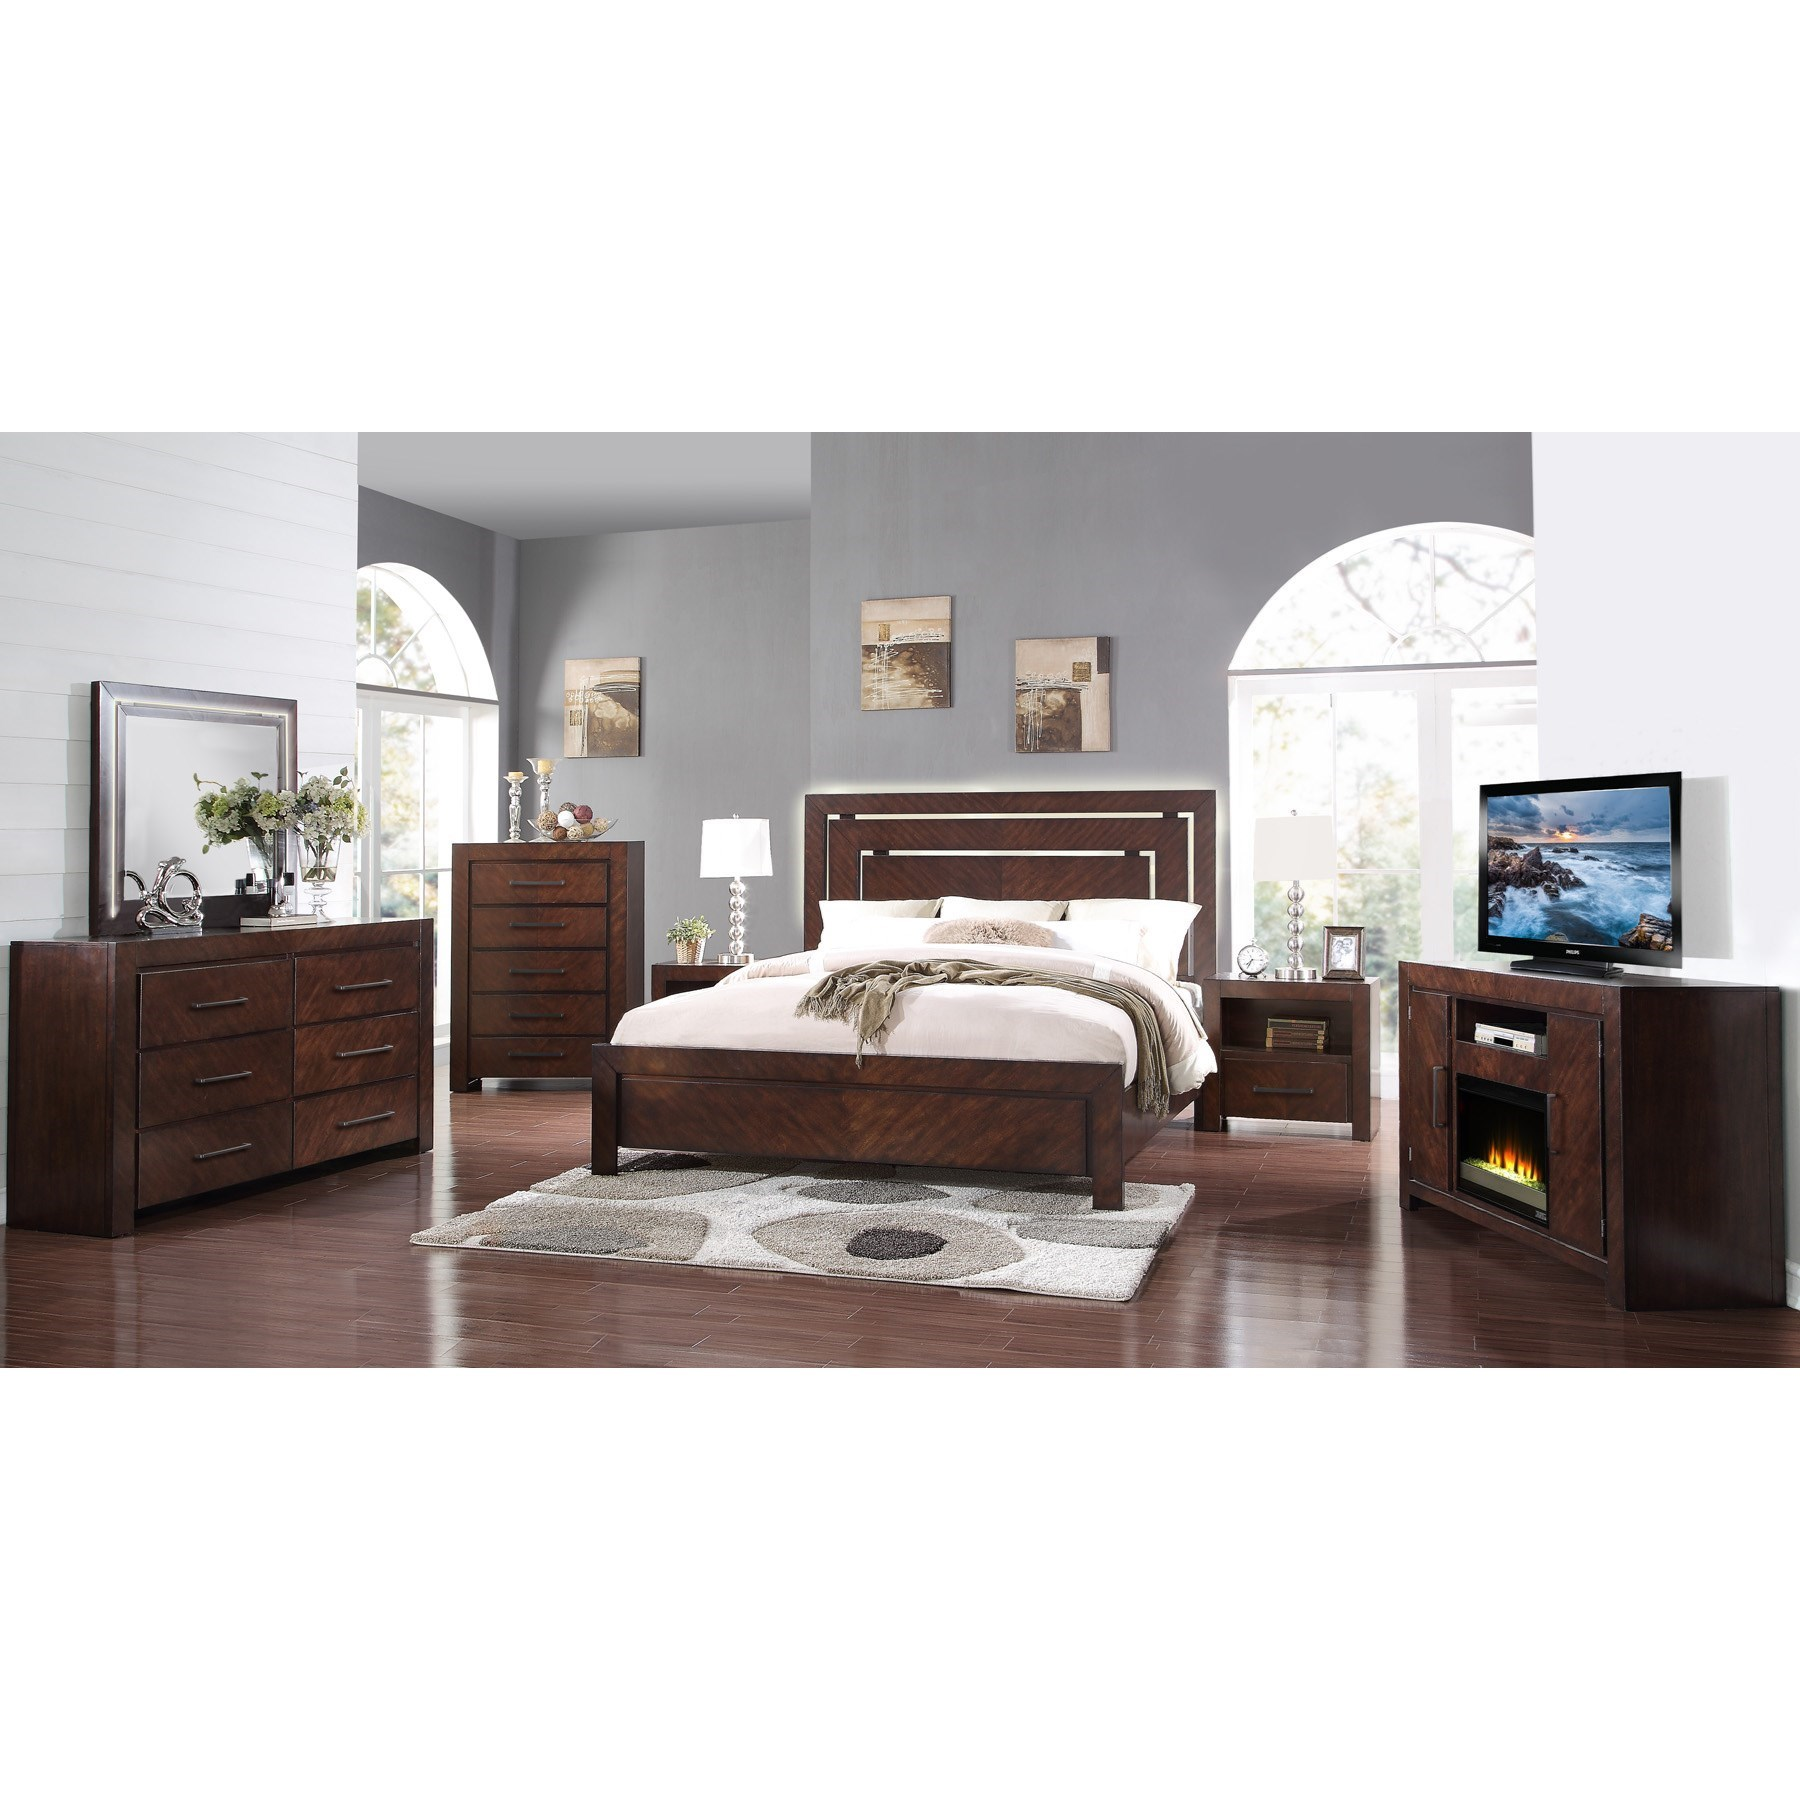 Track Lighting Bedroom Bedroom Chairs With Arms Bedroom Bench Restoration Hardware Warm Bedroom Colors Paint: Legends Furniture City Lights Six Drawer Dresser And